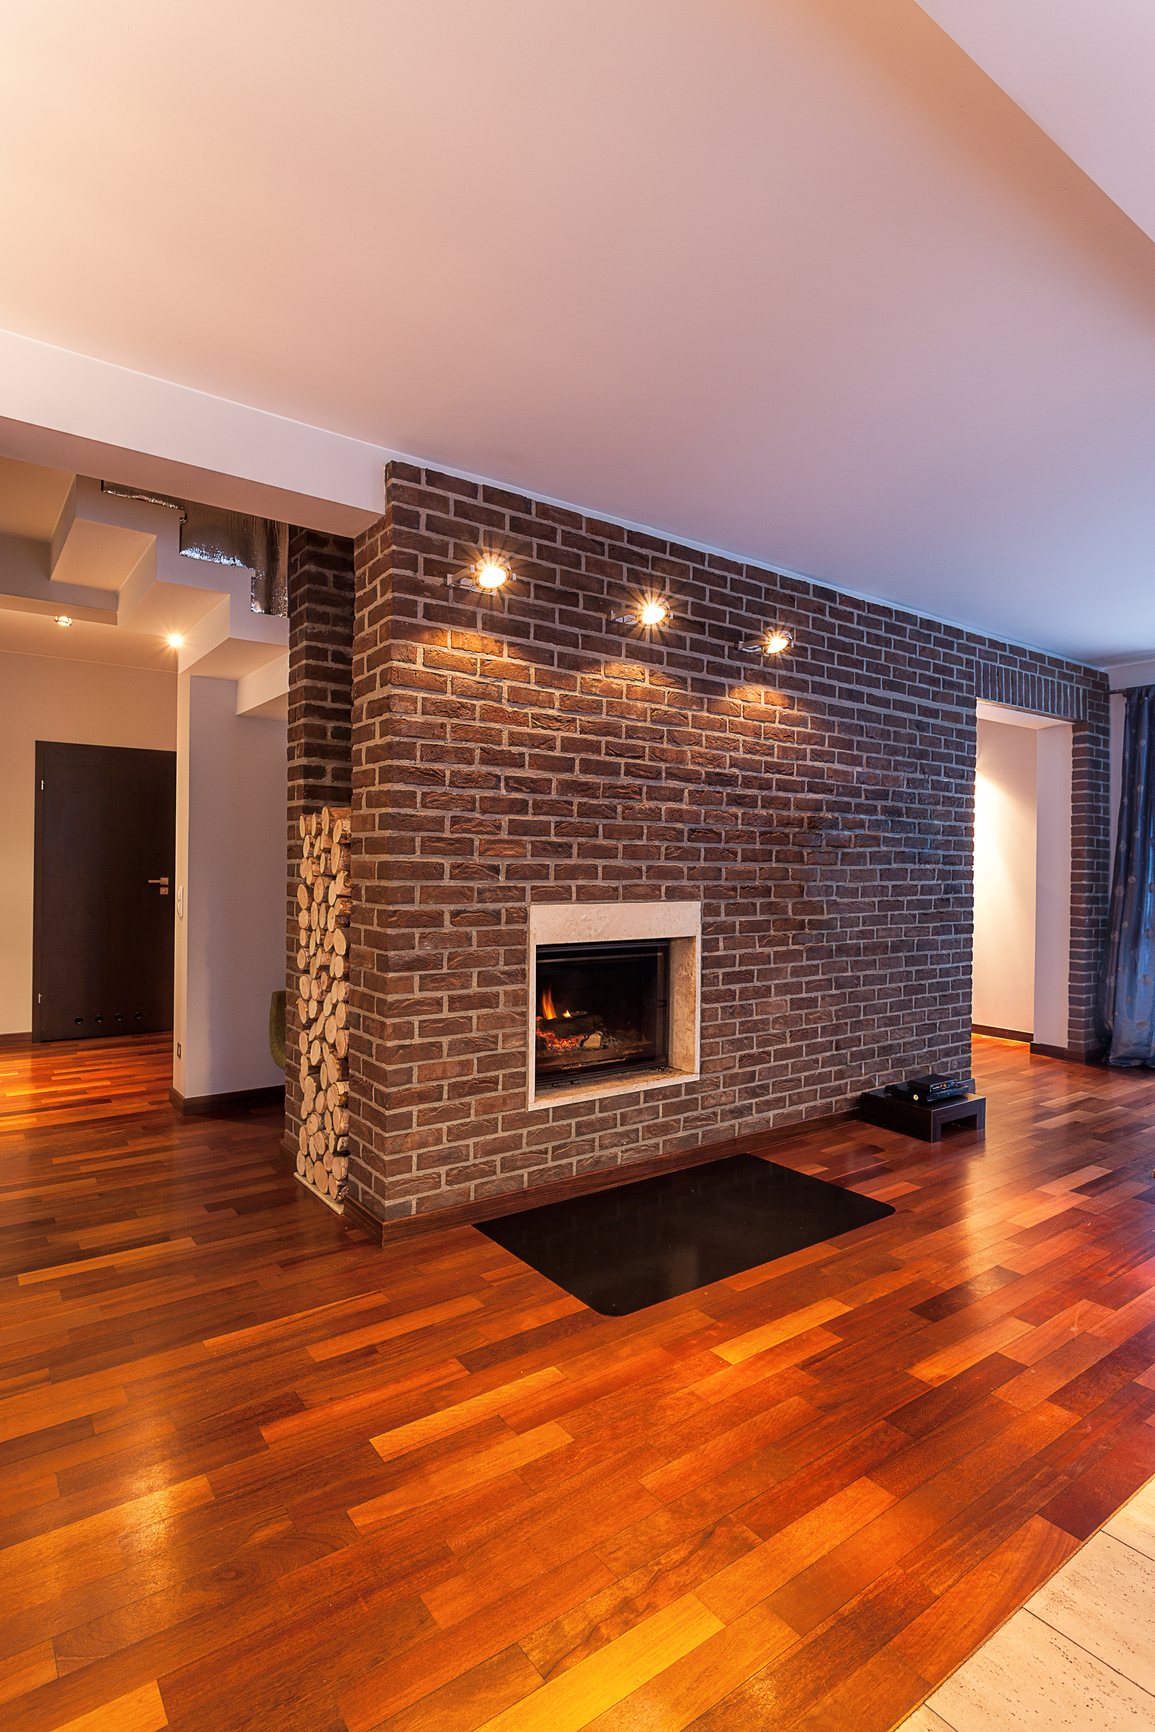 53 fireplaces to warm your inspiration photo gallery - How to make a brick fireplace look modern ...